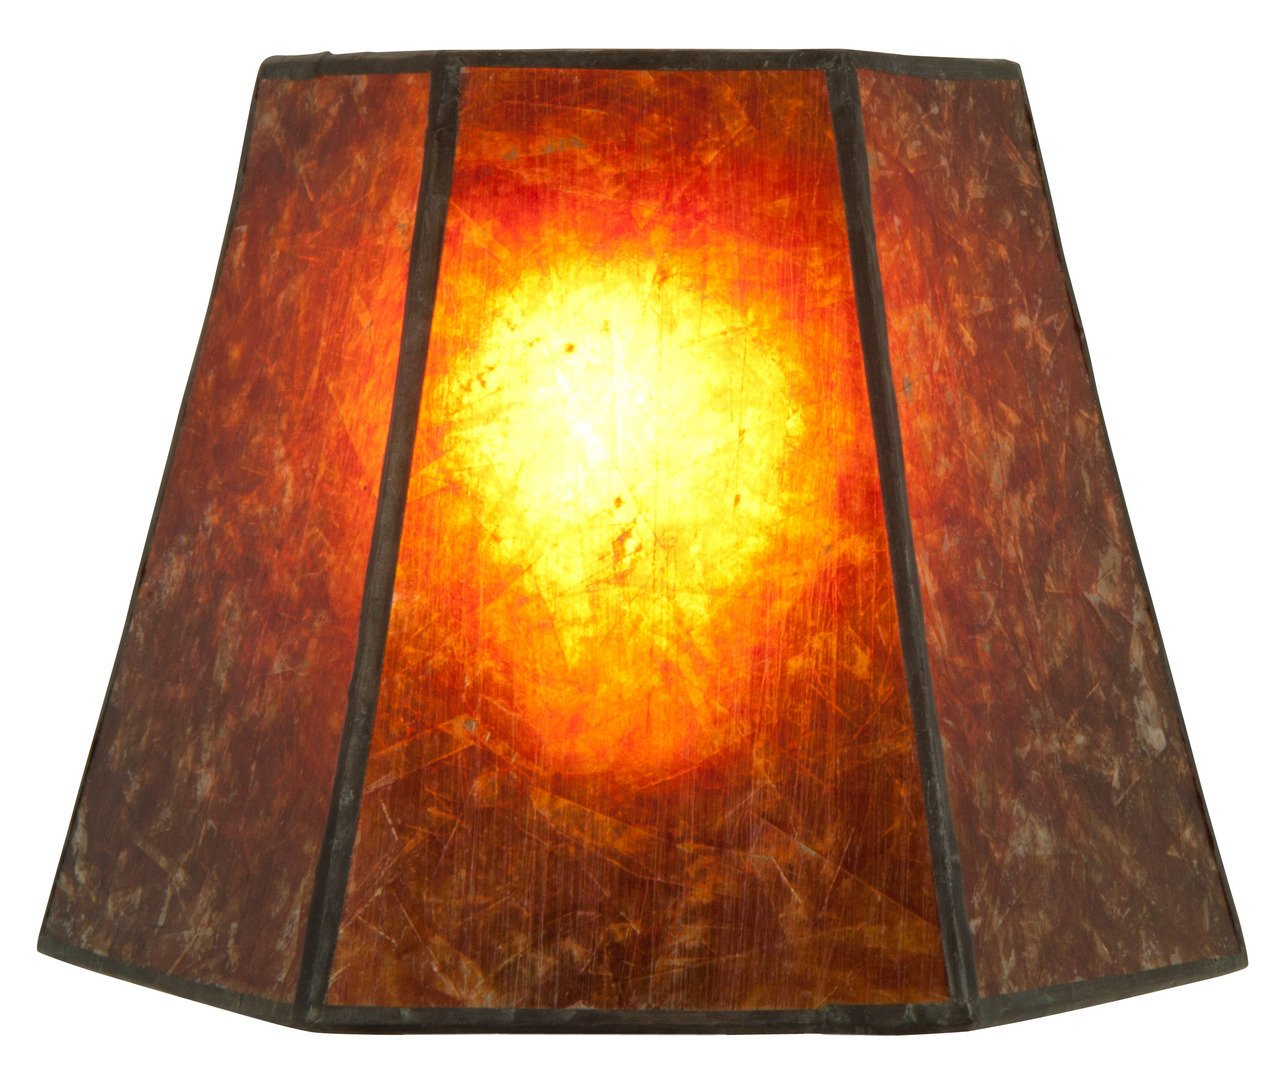 Superior Upgradelights 12 Inch Mica Lamp Shade Replacement 7x12x7.5 (Washer)    Lampshades   Amazon.com